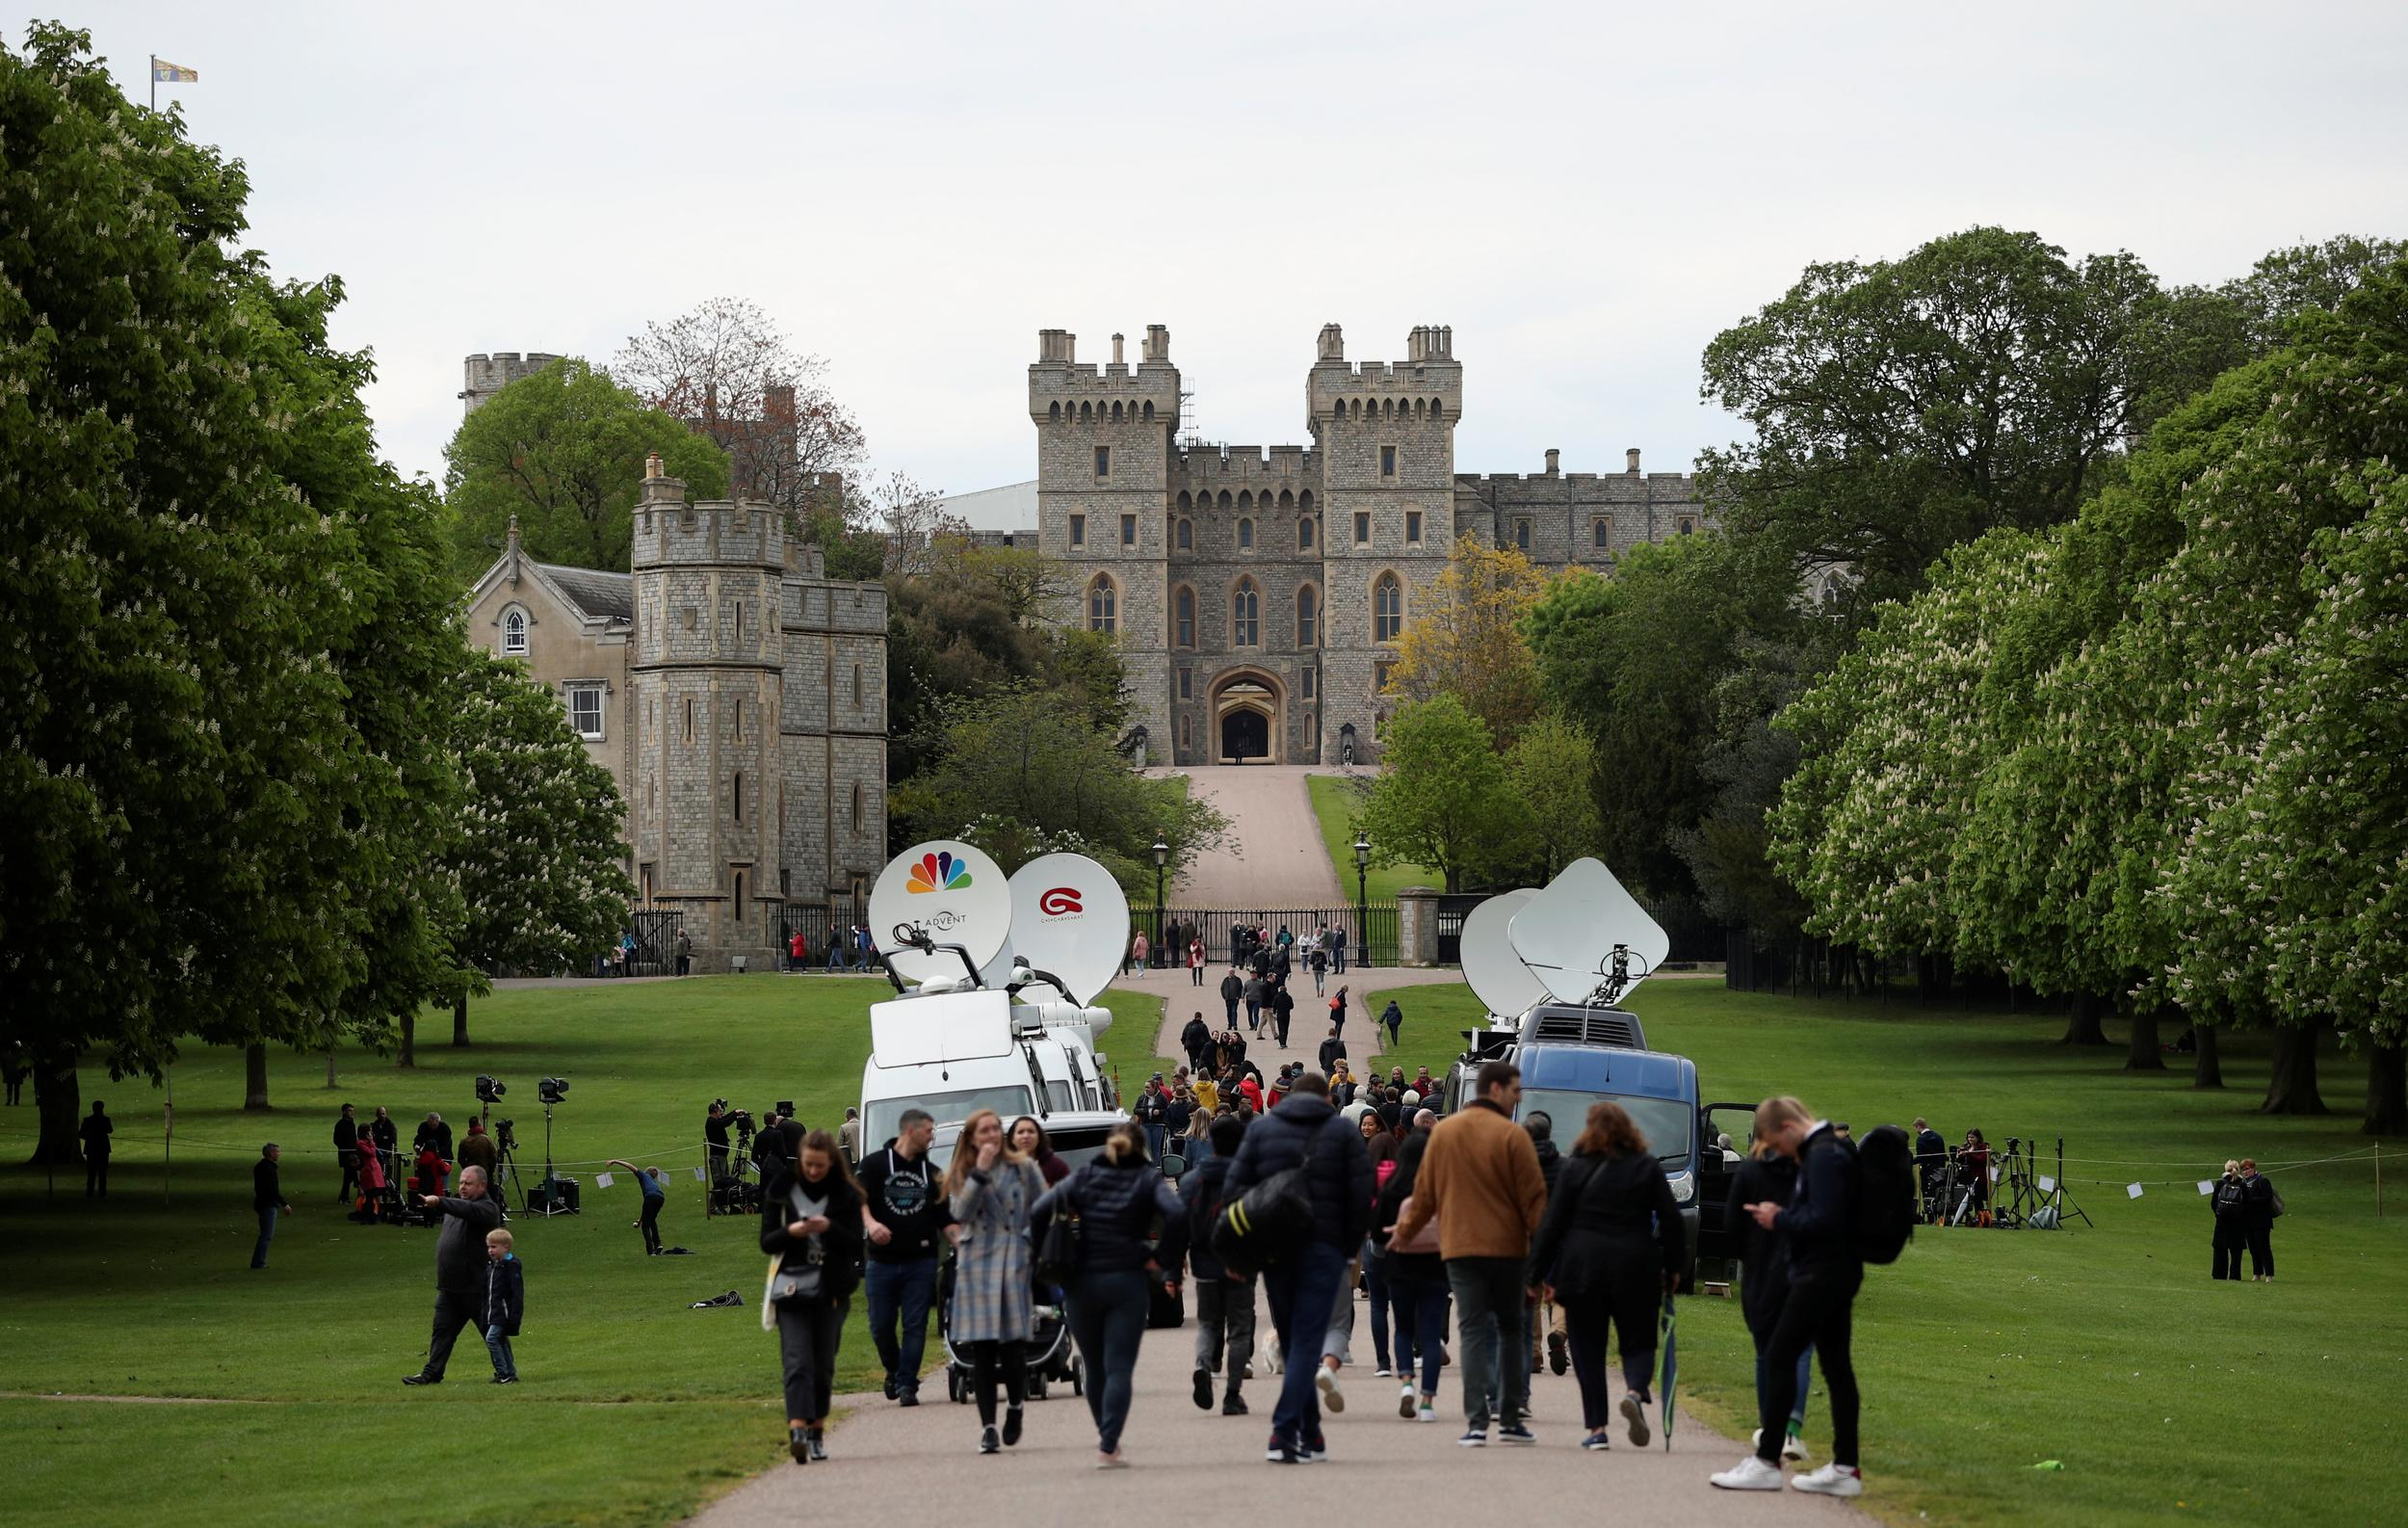 People gather outside Windsor Castle after Britain's Meghan, the Duchess of Sussex gave birth to a boy, in Windsor, Britain May 6, 2019. REUTERS/Hannah McKay